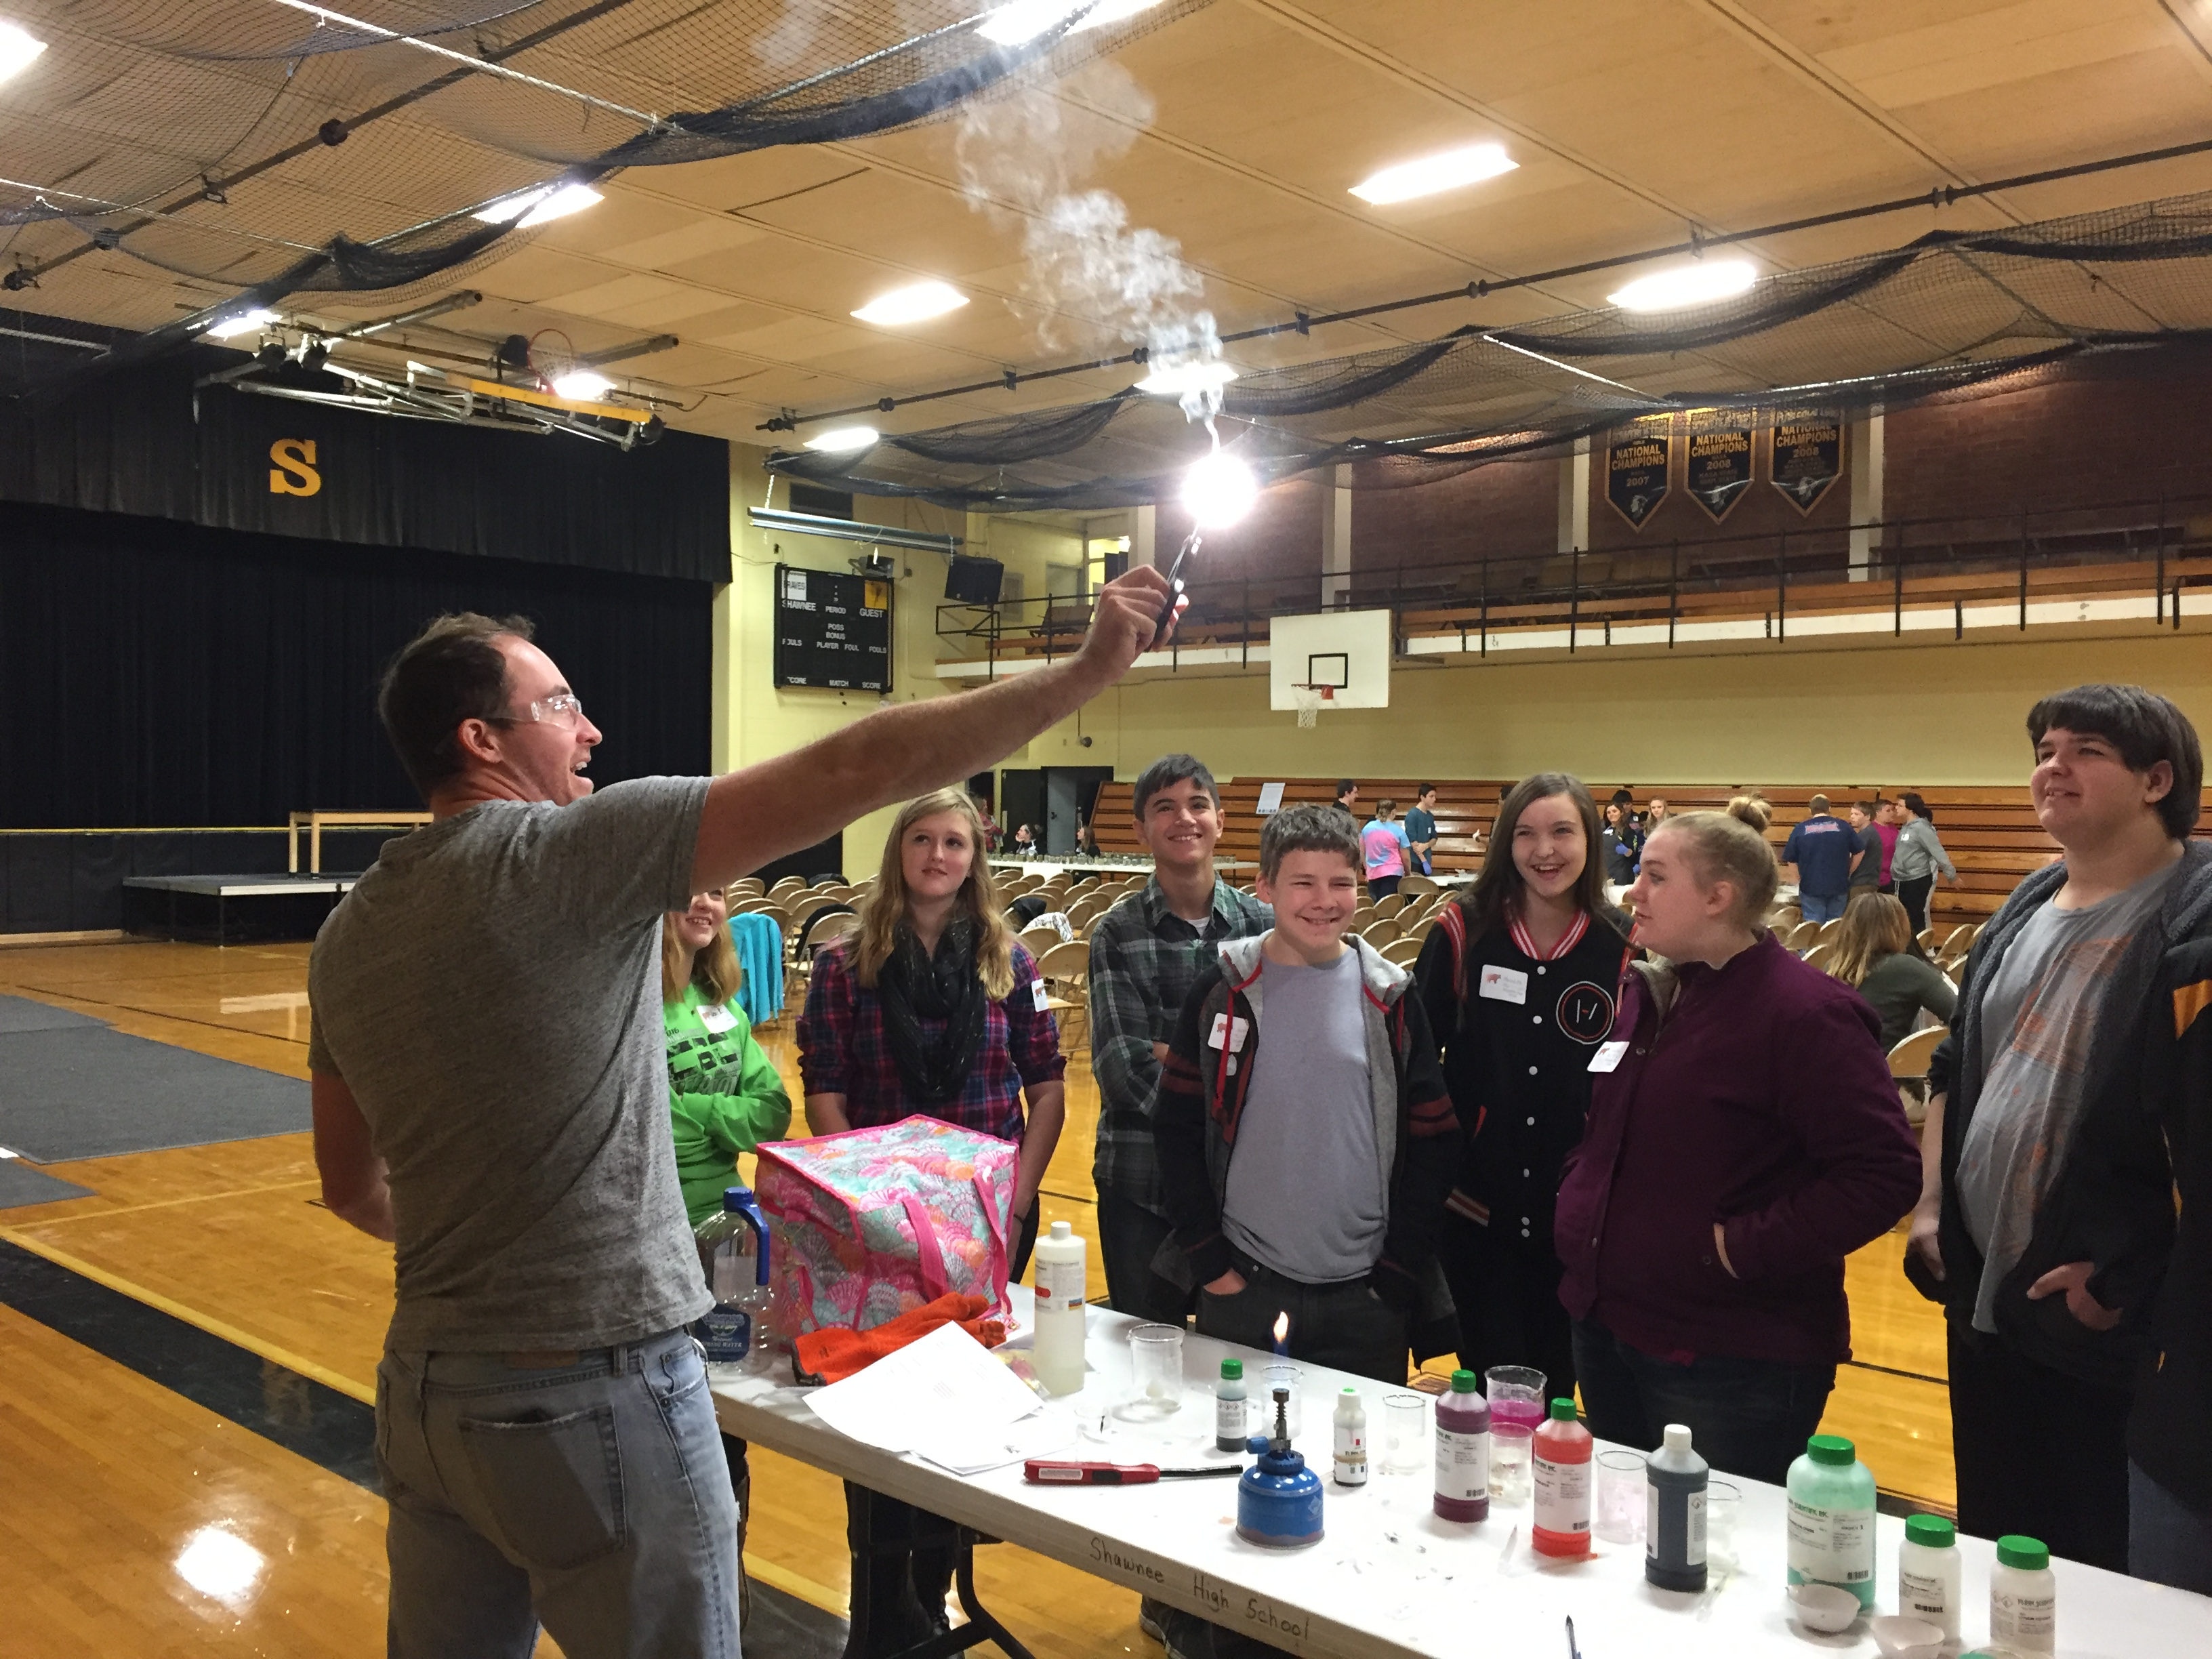 Shawnee High School hosted Science Day to highlight the science curriculum and programs offered at the school.